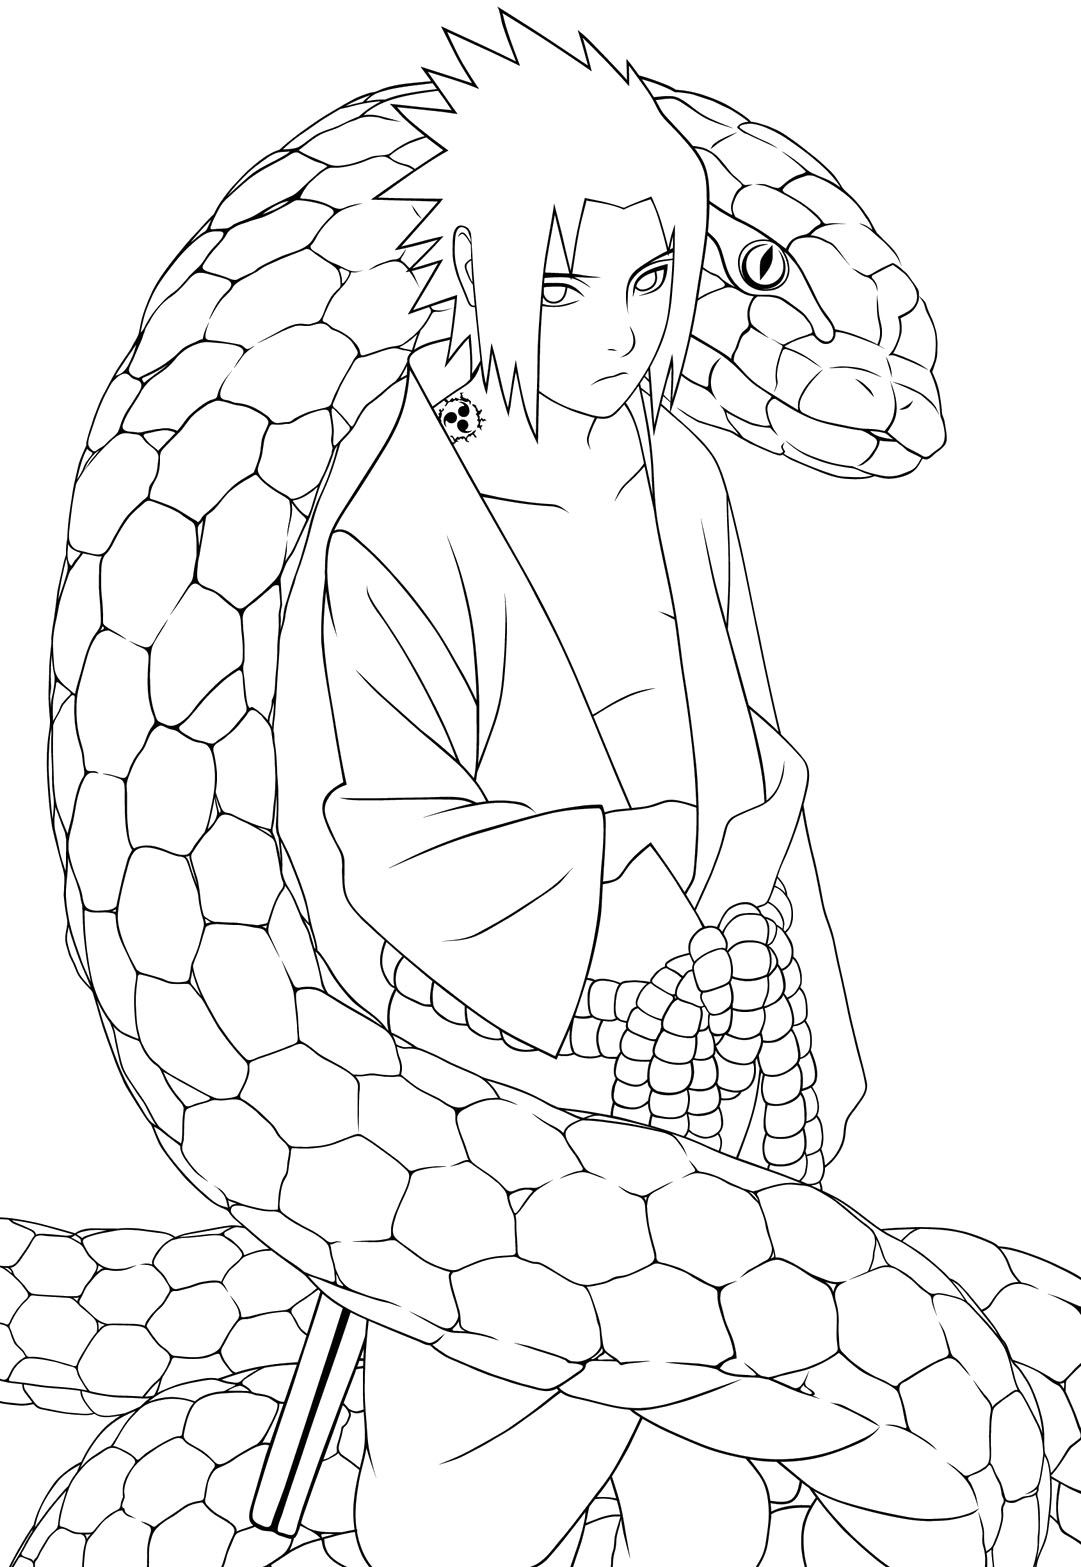 This is a graphic of Mesmerizing naruto and sasuke coloring pages